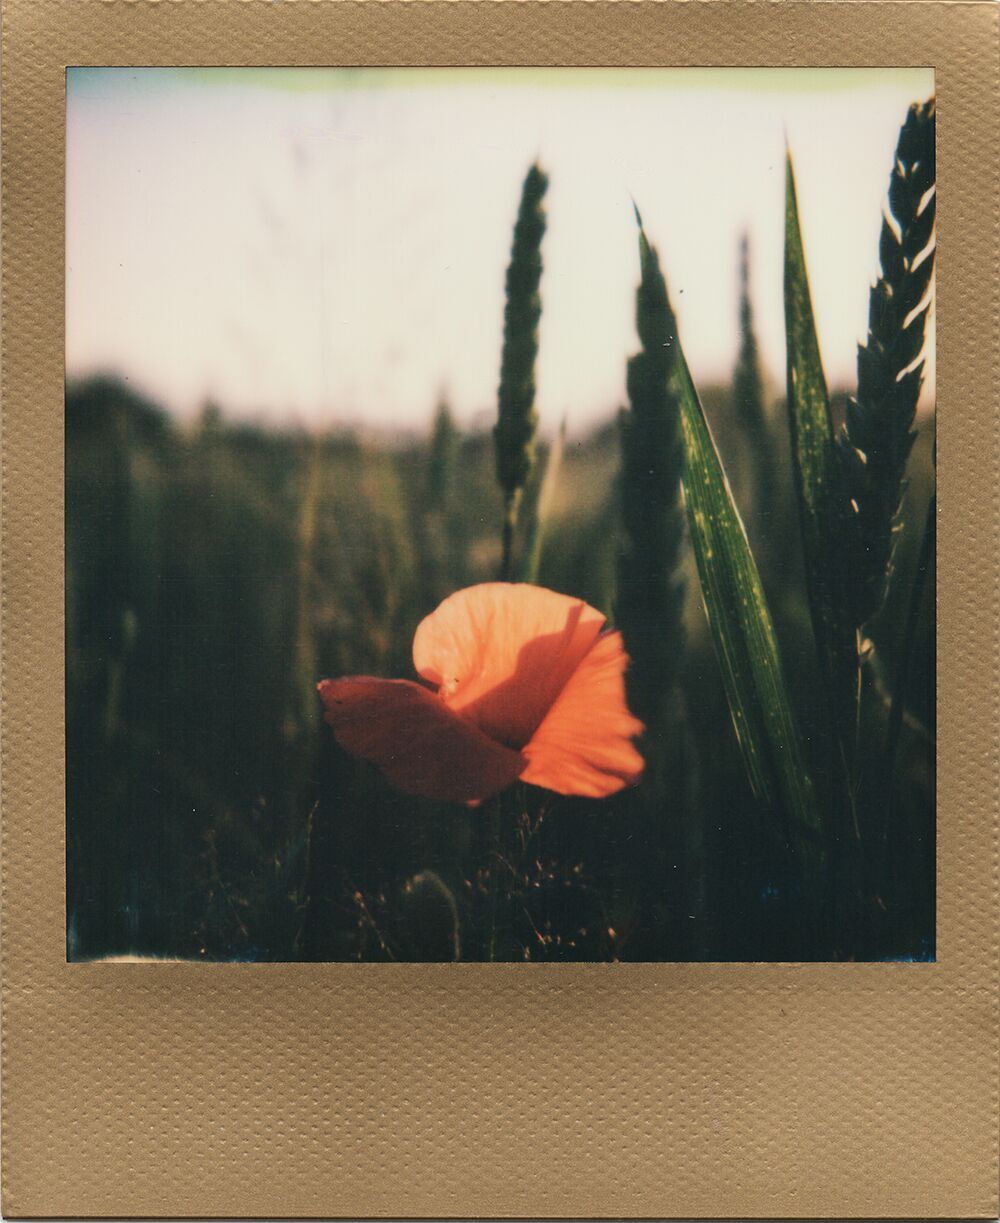 Poppy Love | Polaroid SX-70 Alpha | Impossible Project 600 film and ND filter | Karin Claus